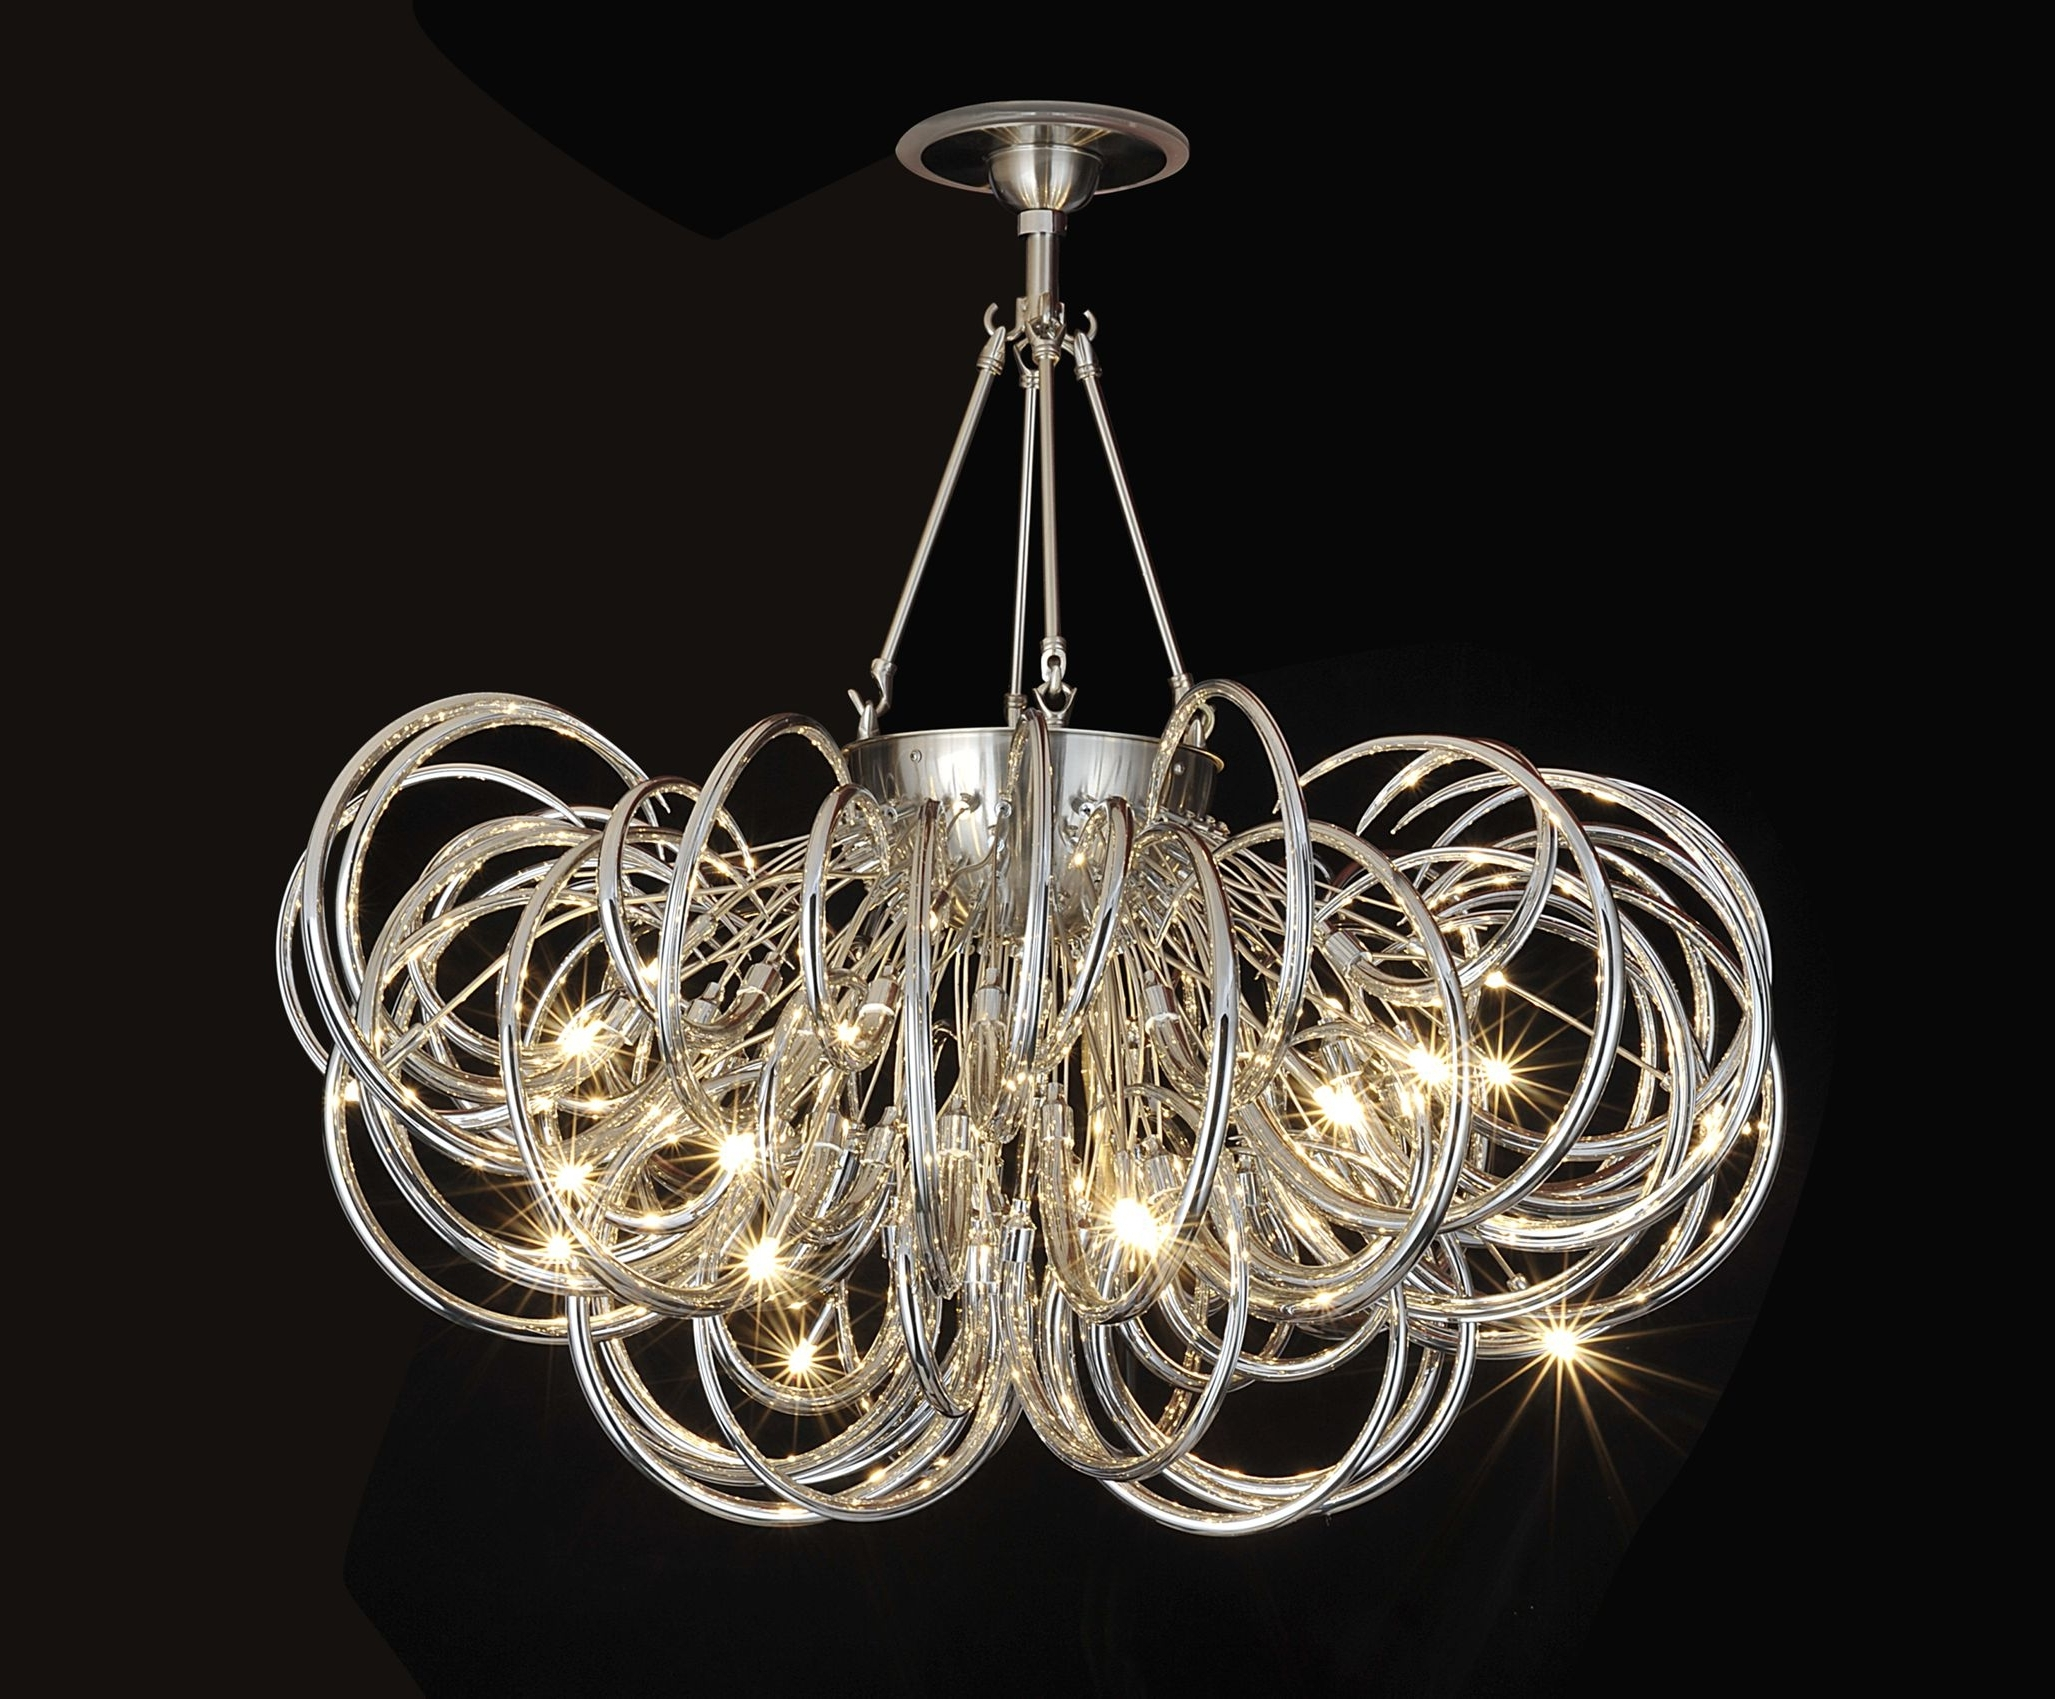 2019 Modern Glass Chandeliers Intended For Amazing Fabulous Modern Glass Chandelier Contemporary Glass (View 2 of 20)